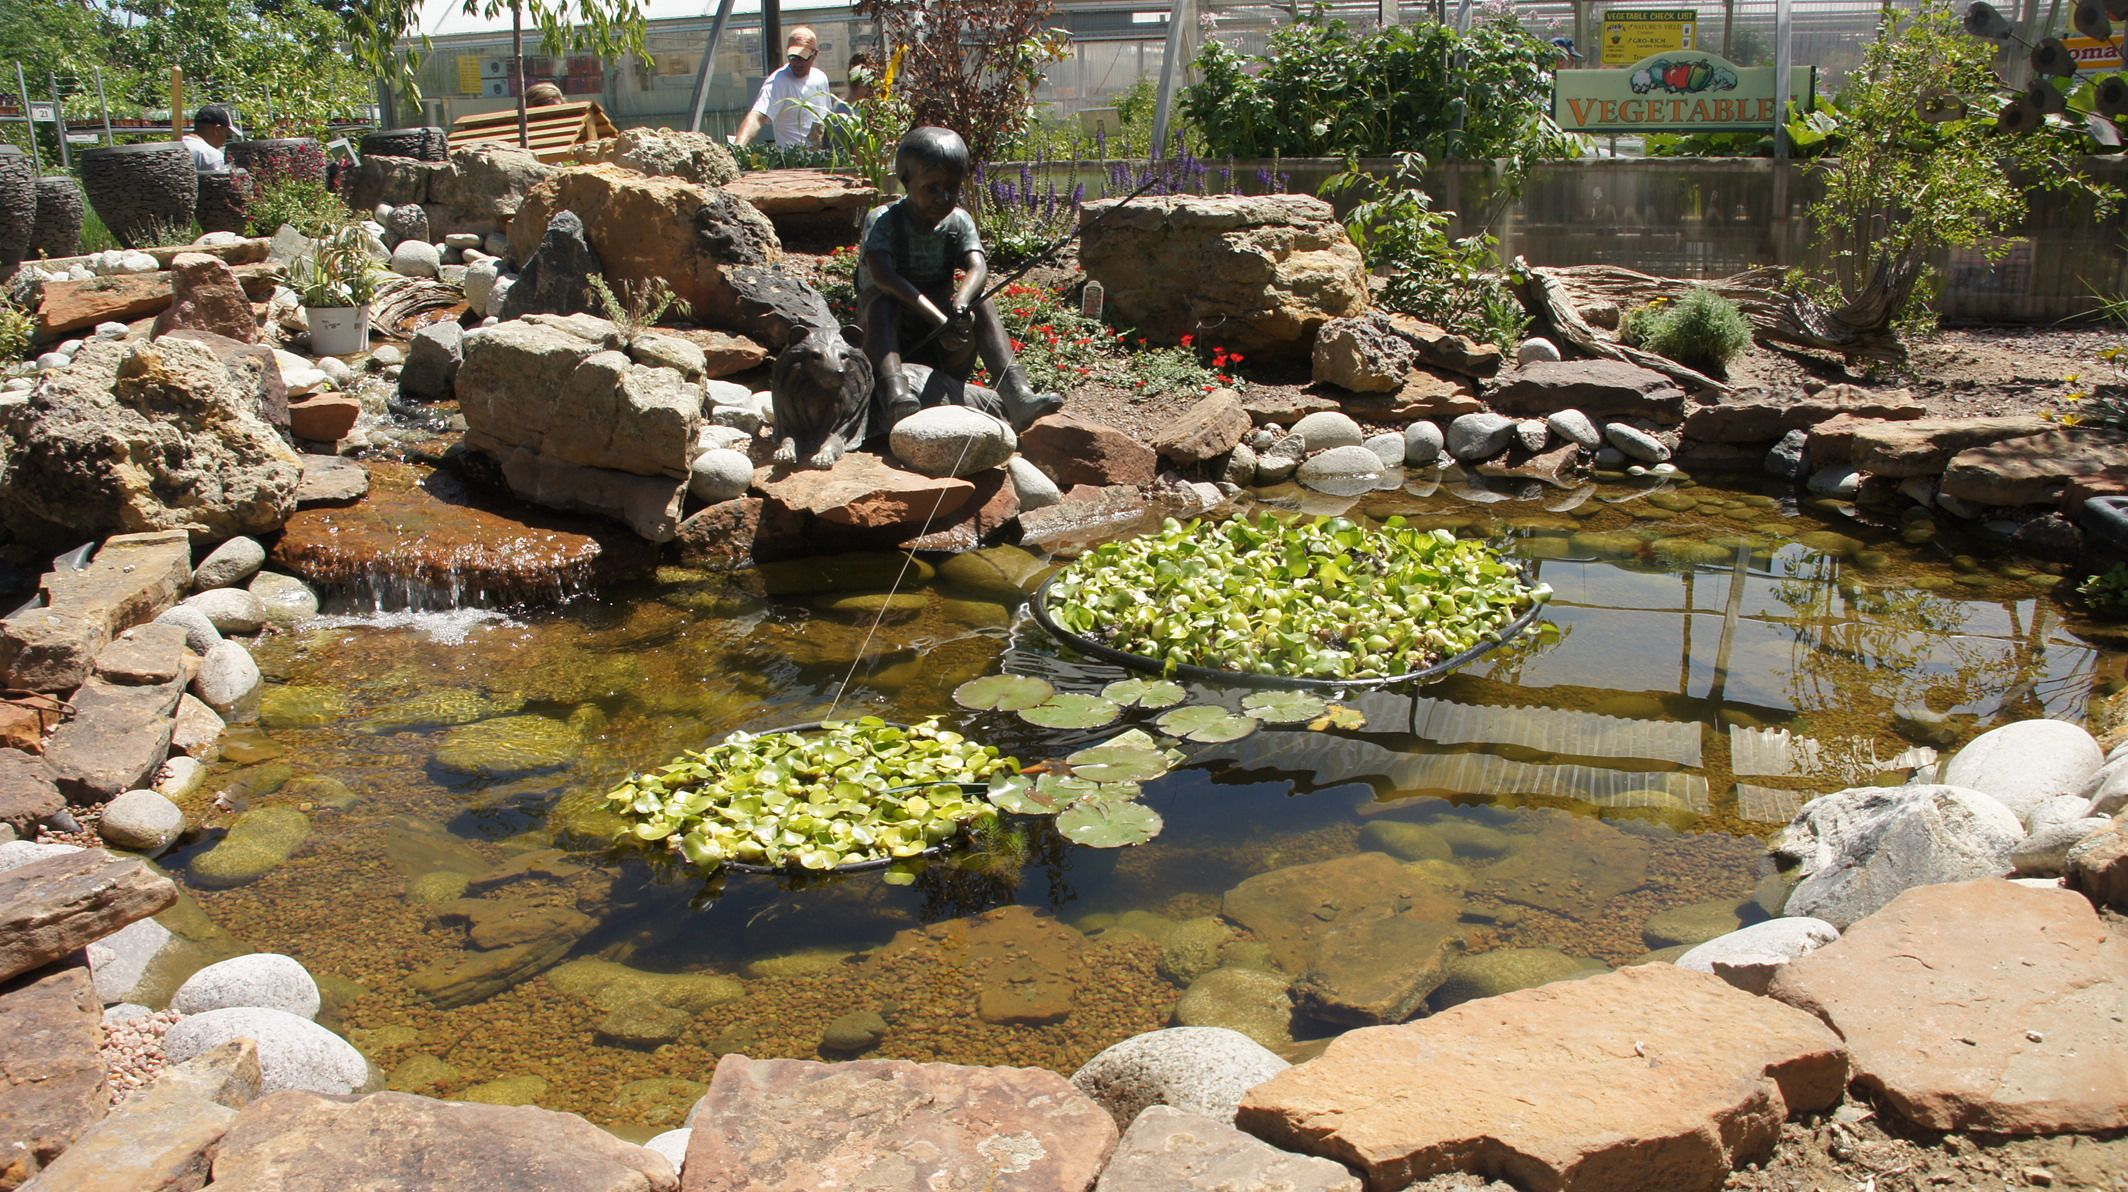 Our Pond From The Build A Pond Workshop We Hold Annually The Floating Greenery Are Water Hyacinth Water Garden Building A Pond Garden Center